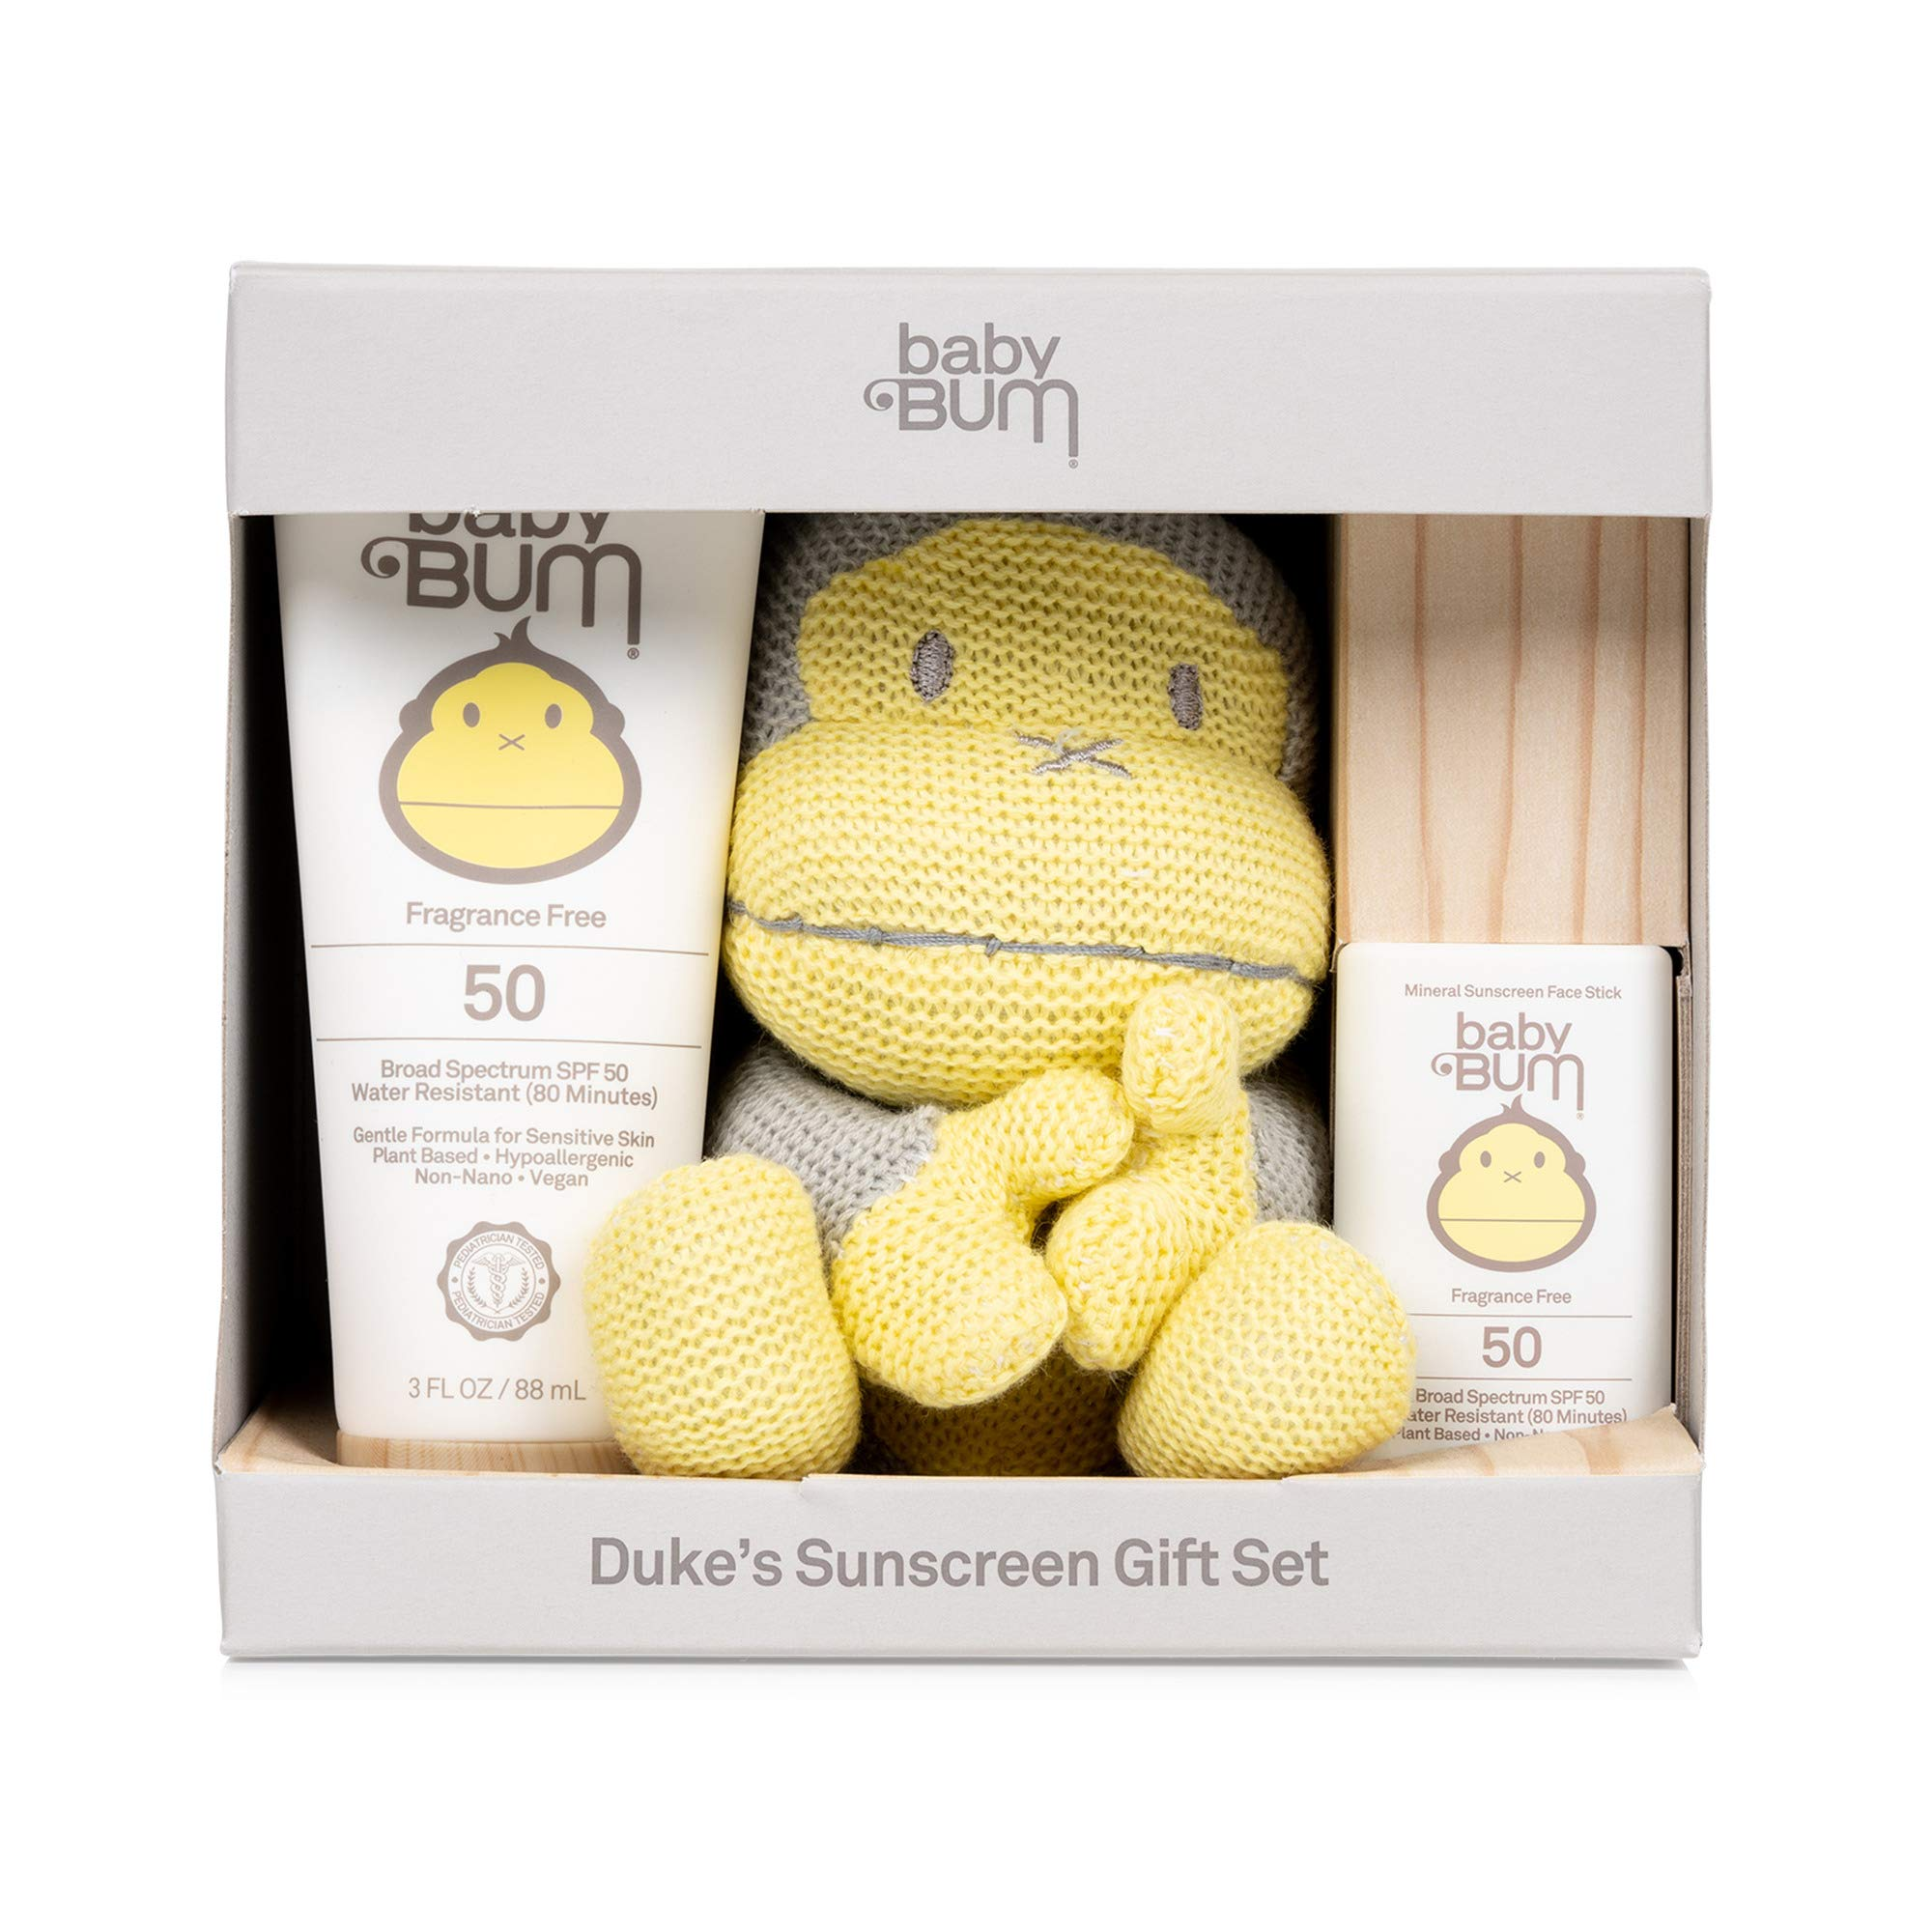 Sun Bum Baby Bum Duke's Sunscreen Gift Set   Travel Sized SPF 50 Mineral Sun Protection Lotion and Face Stick for Sensitive Skin with Duke Knit Toy   Fragrance Free   Gluten Free and Vegan, Yellow